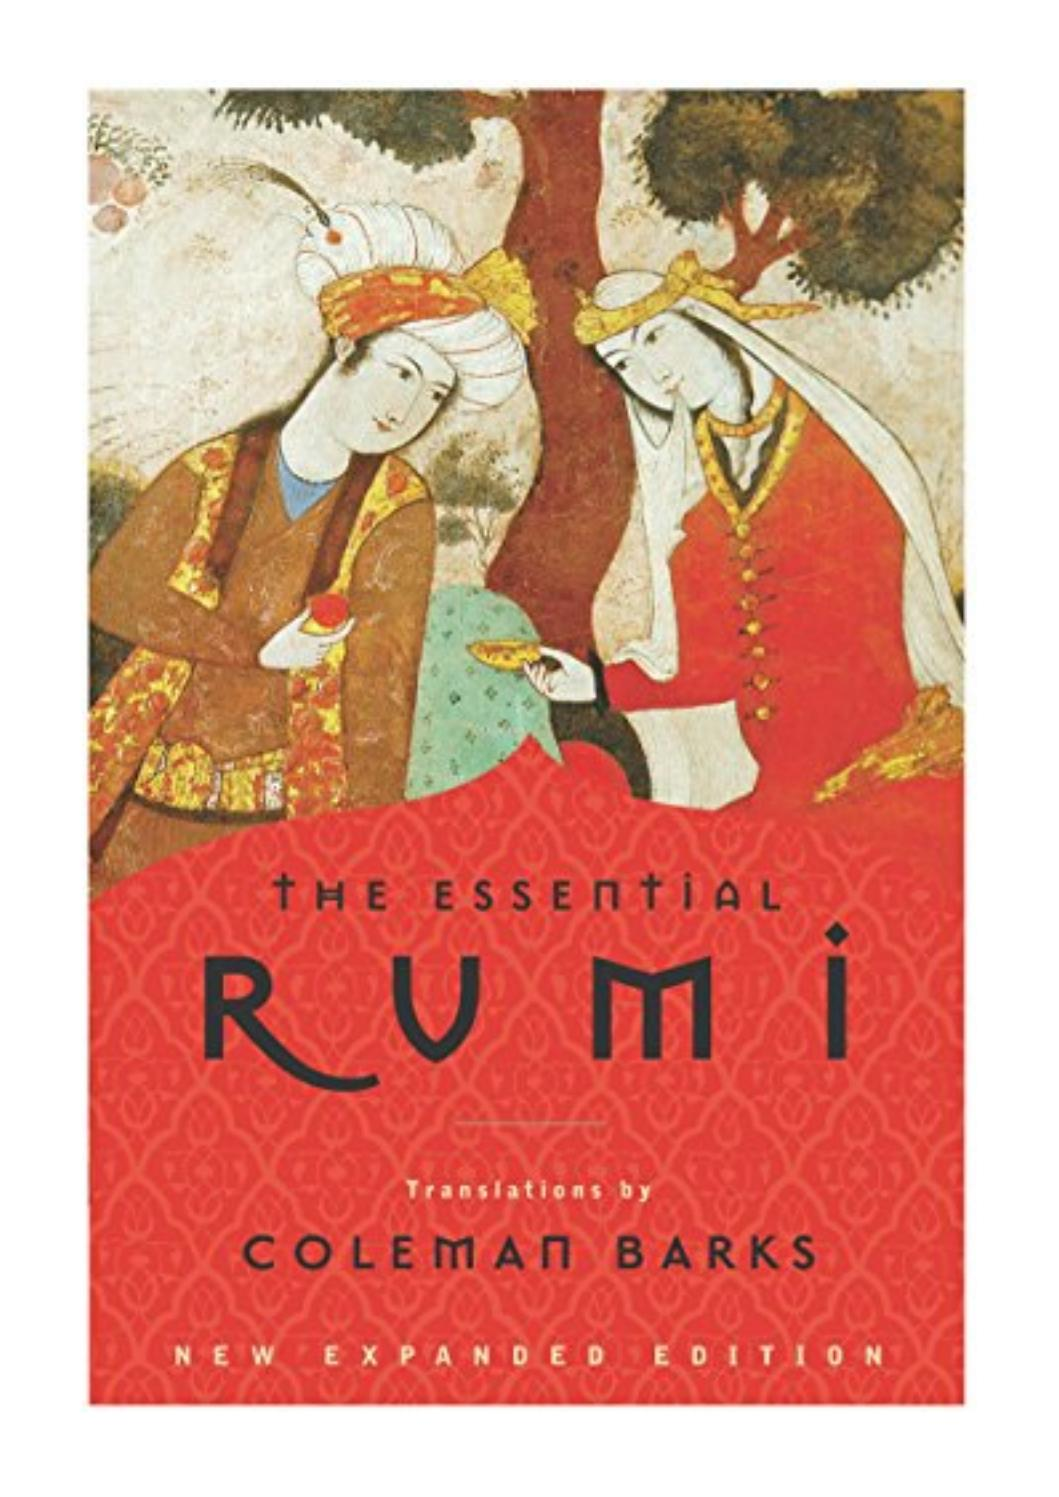 The Essential Rumi